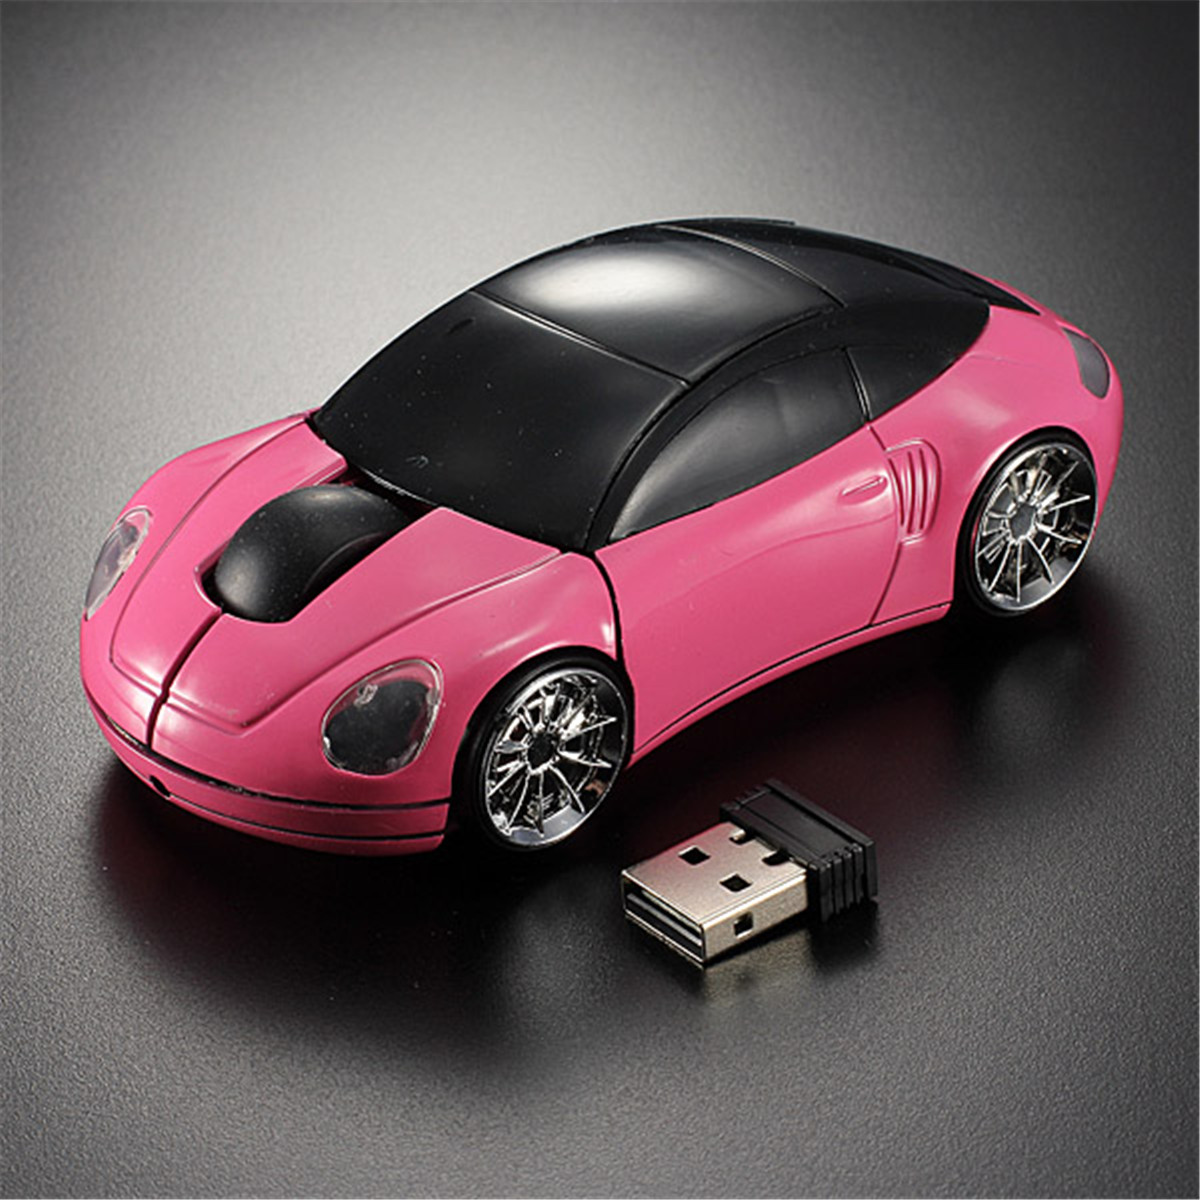 New USB Wireless Optical Mouse 2.4GHz 1600DPI 3D Car Shape Mice USB 2.0 Receiver for Laptop PC